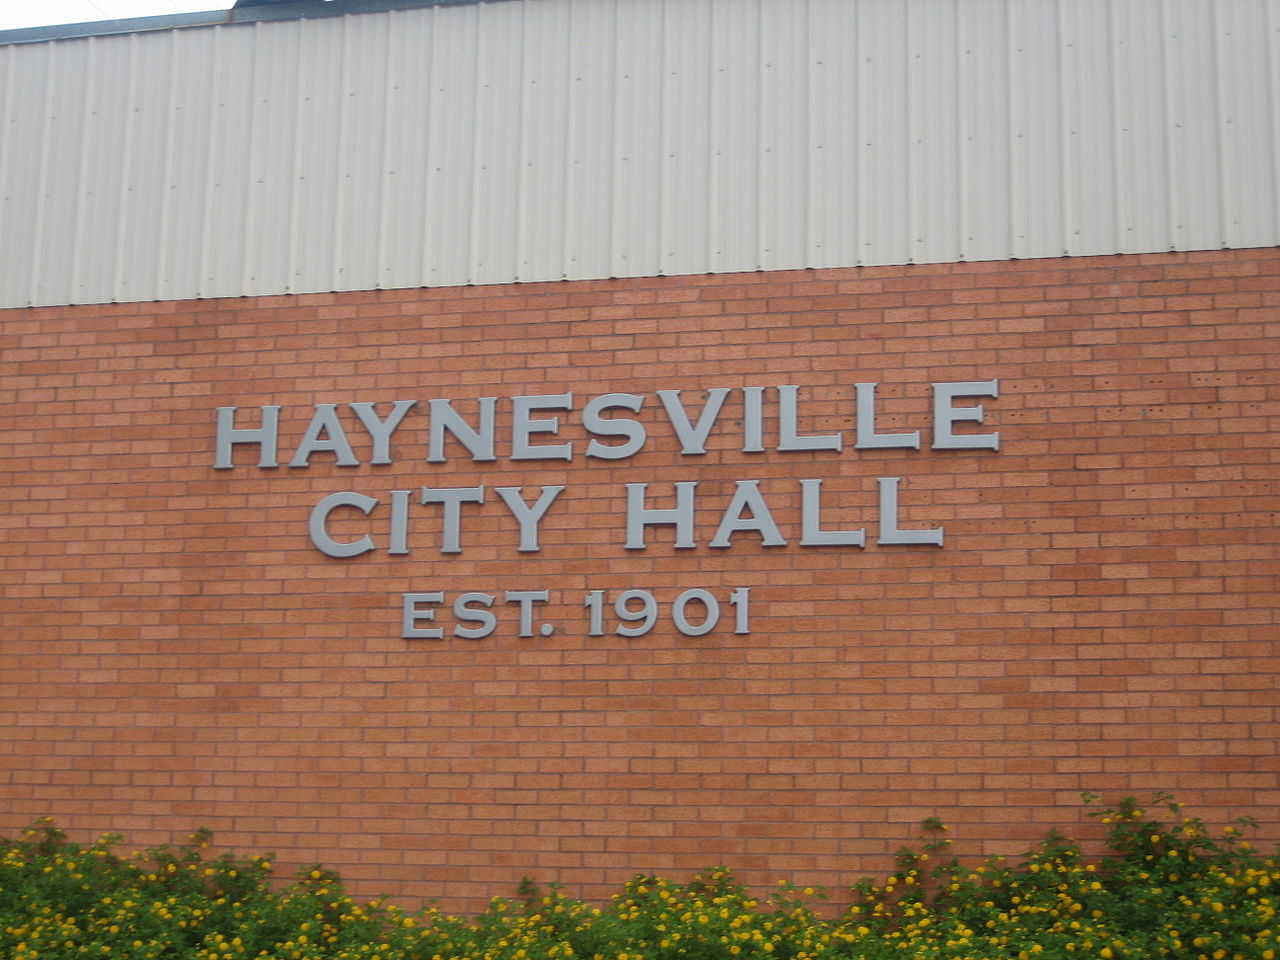 haynesville dating The barnett shale, marcellus shale, haynesville shale, fayetteville shale, and other gas-producing rocks are all dark gray or black shales that yield natural gas.